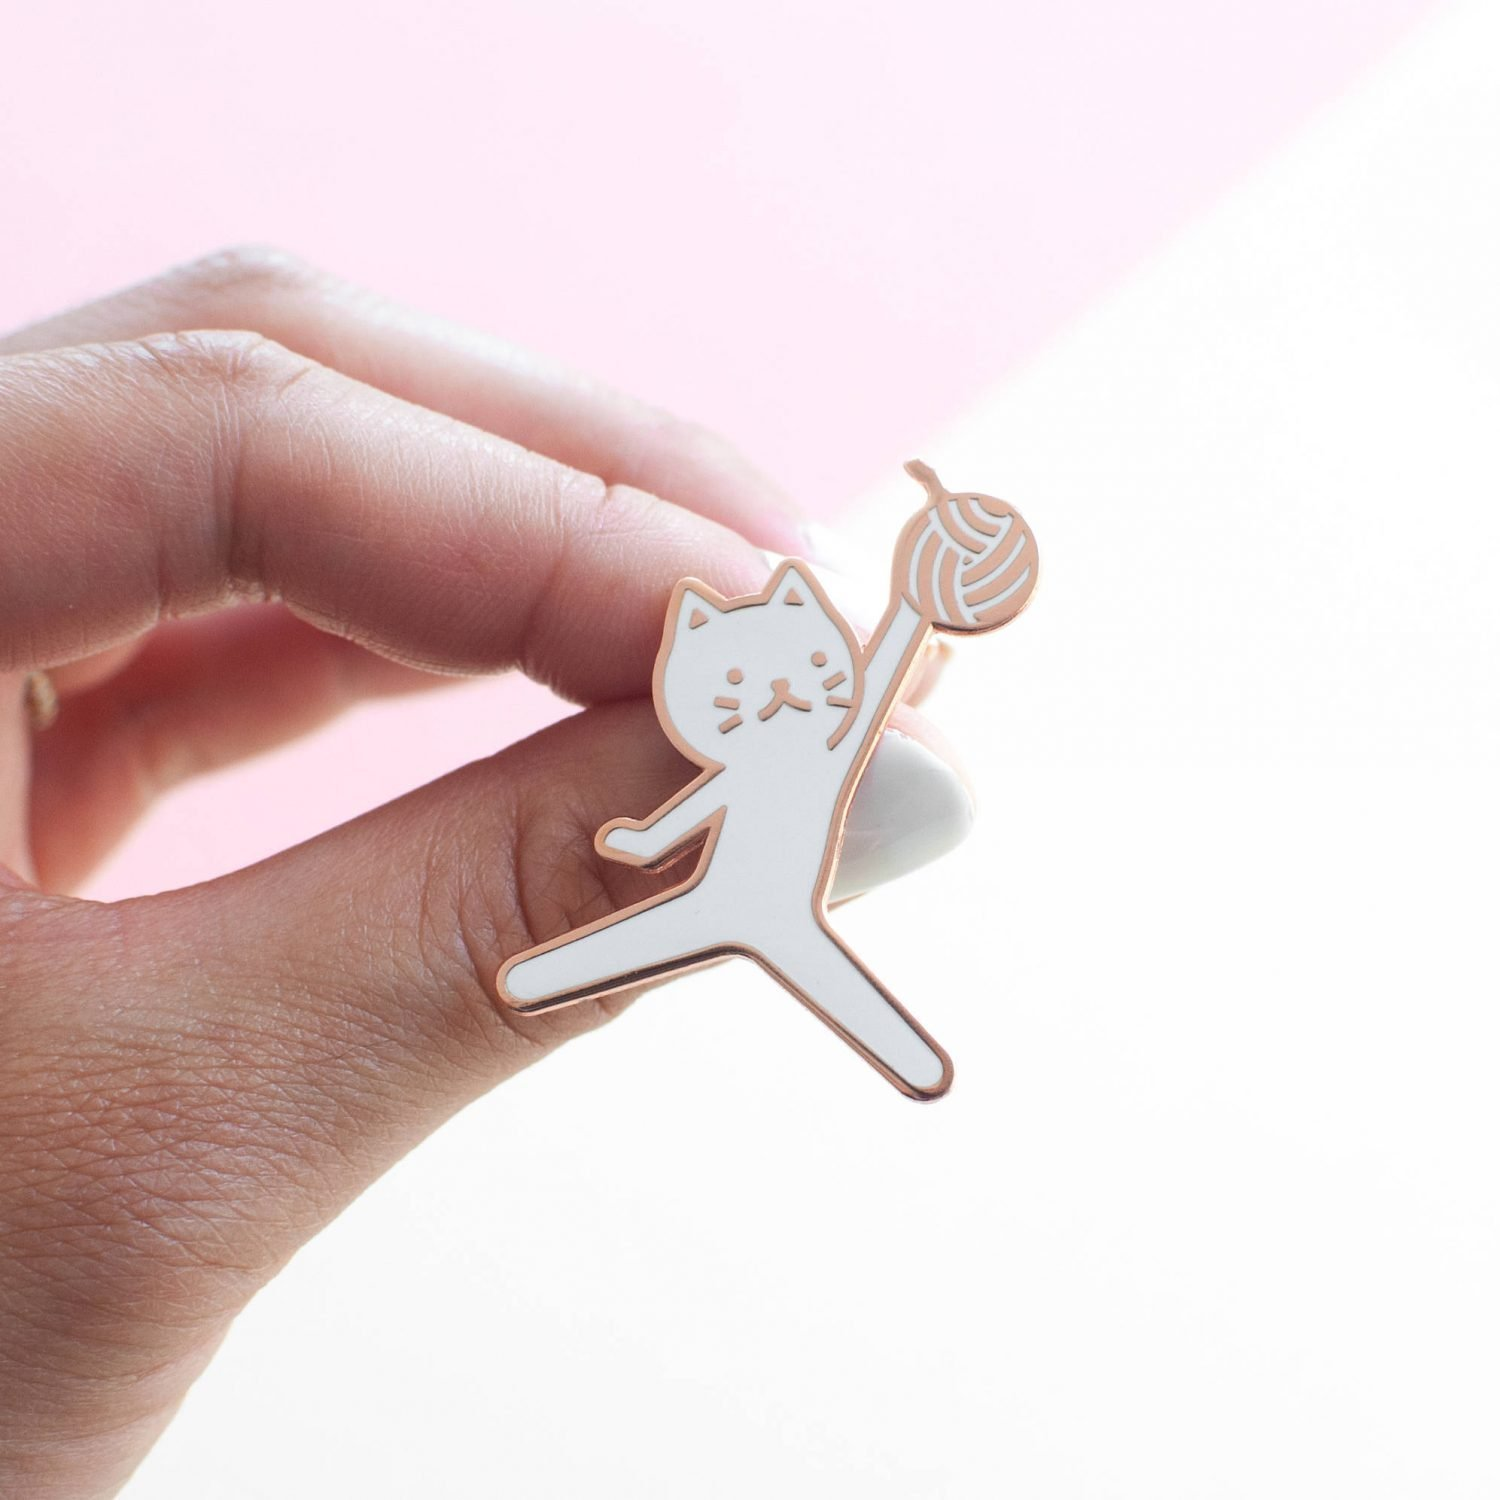 Jumpcat pin by Everyday Olive